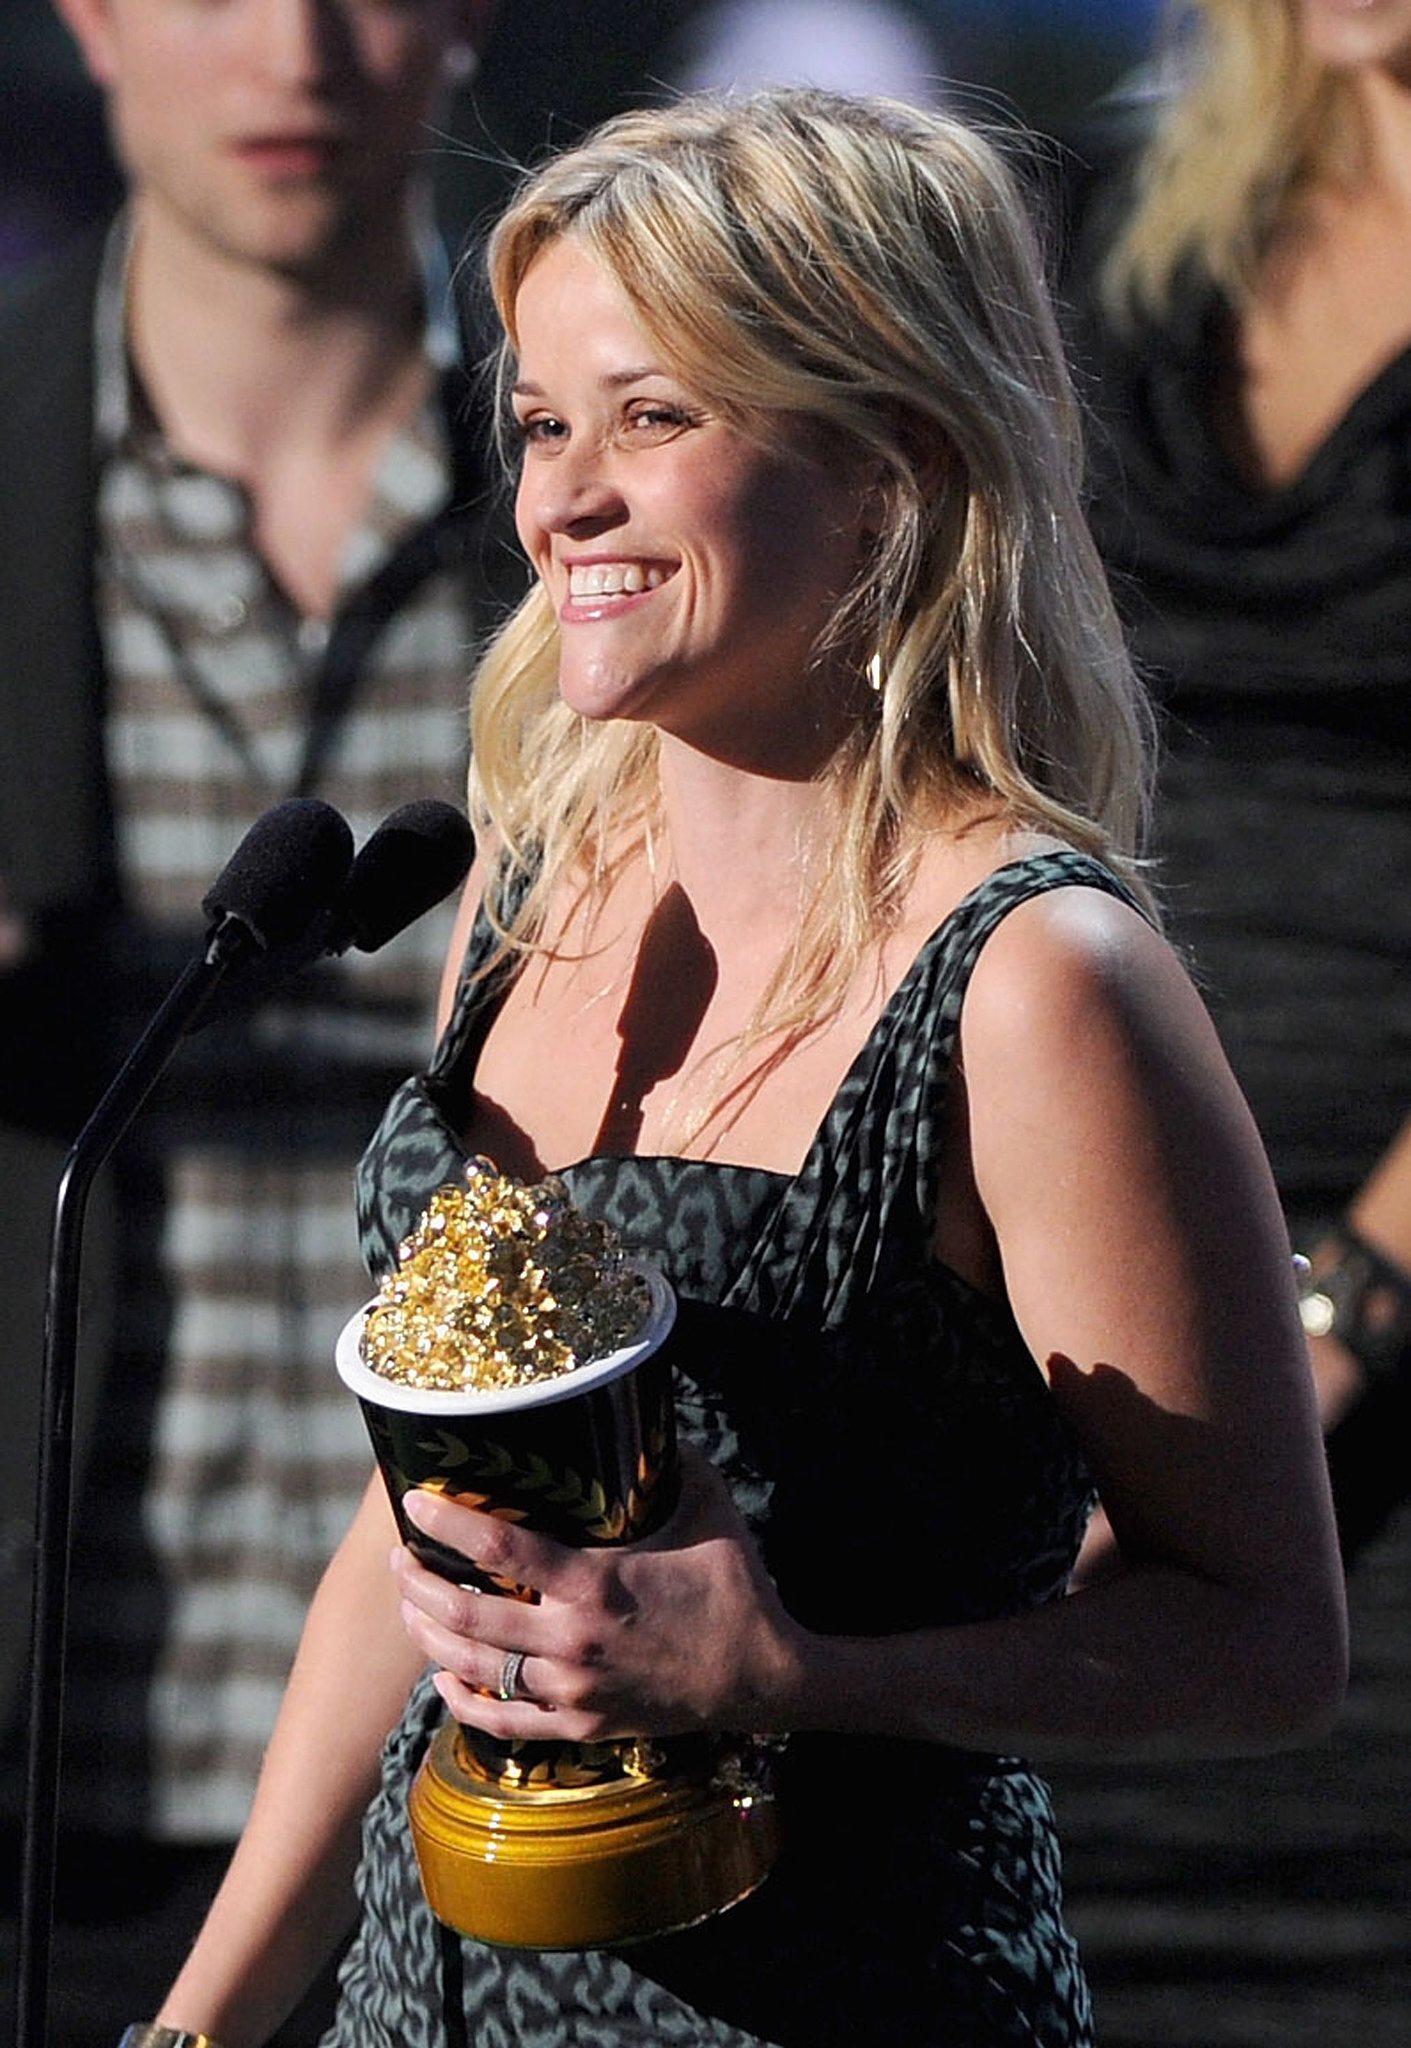 Reese was beaming while accepting her award at the MTV Movie Awards in June 2011.